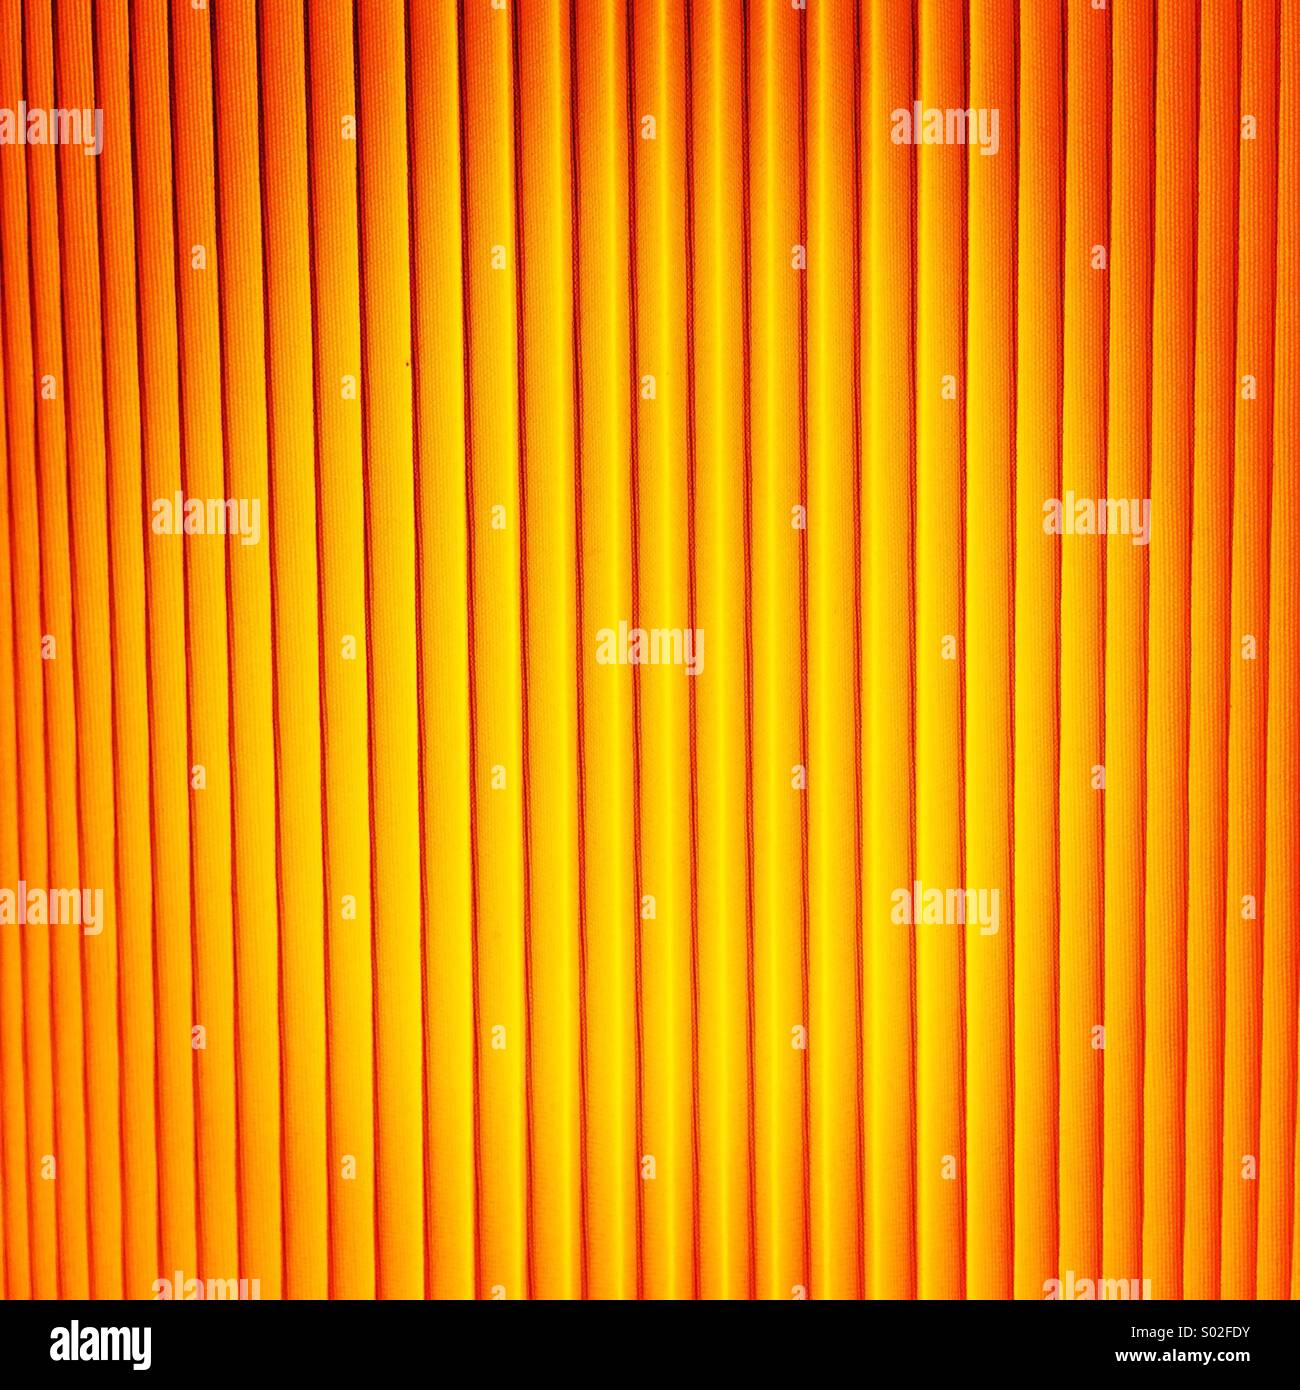 Abstract parallel - Stock Image